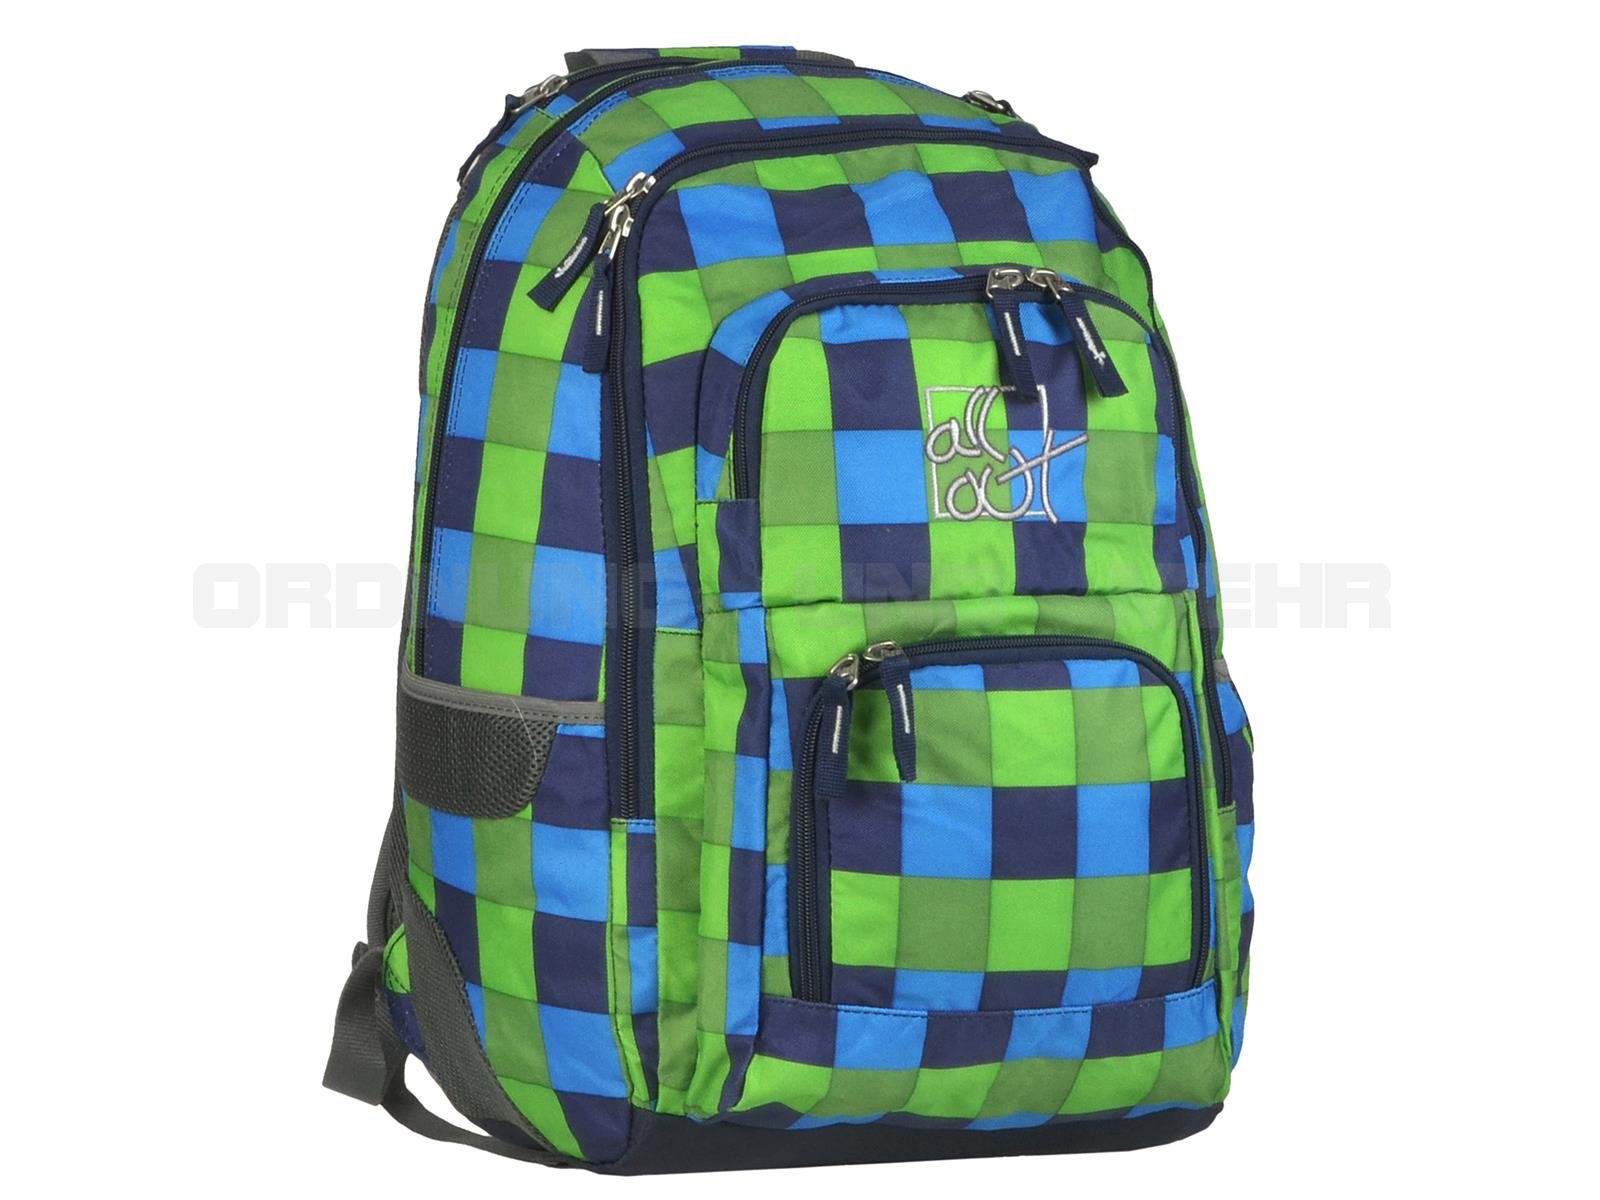 All Out Schulrucksack Sets - tolle Designs günstig im 3teiligen Set - Louth POOL CHECK blau grün